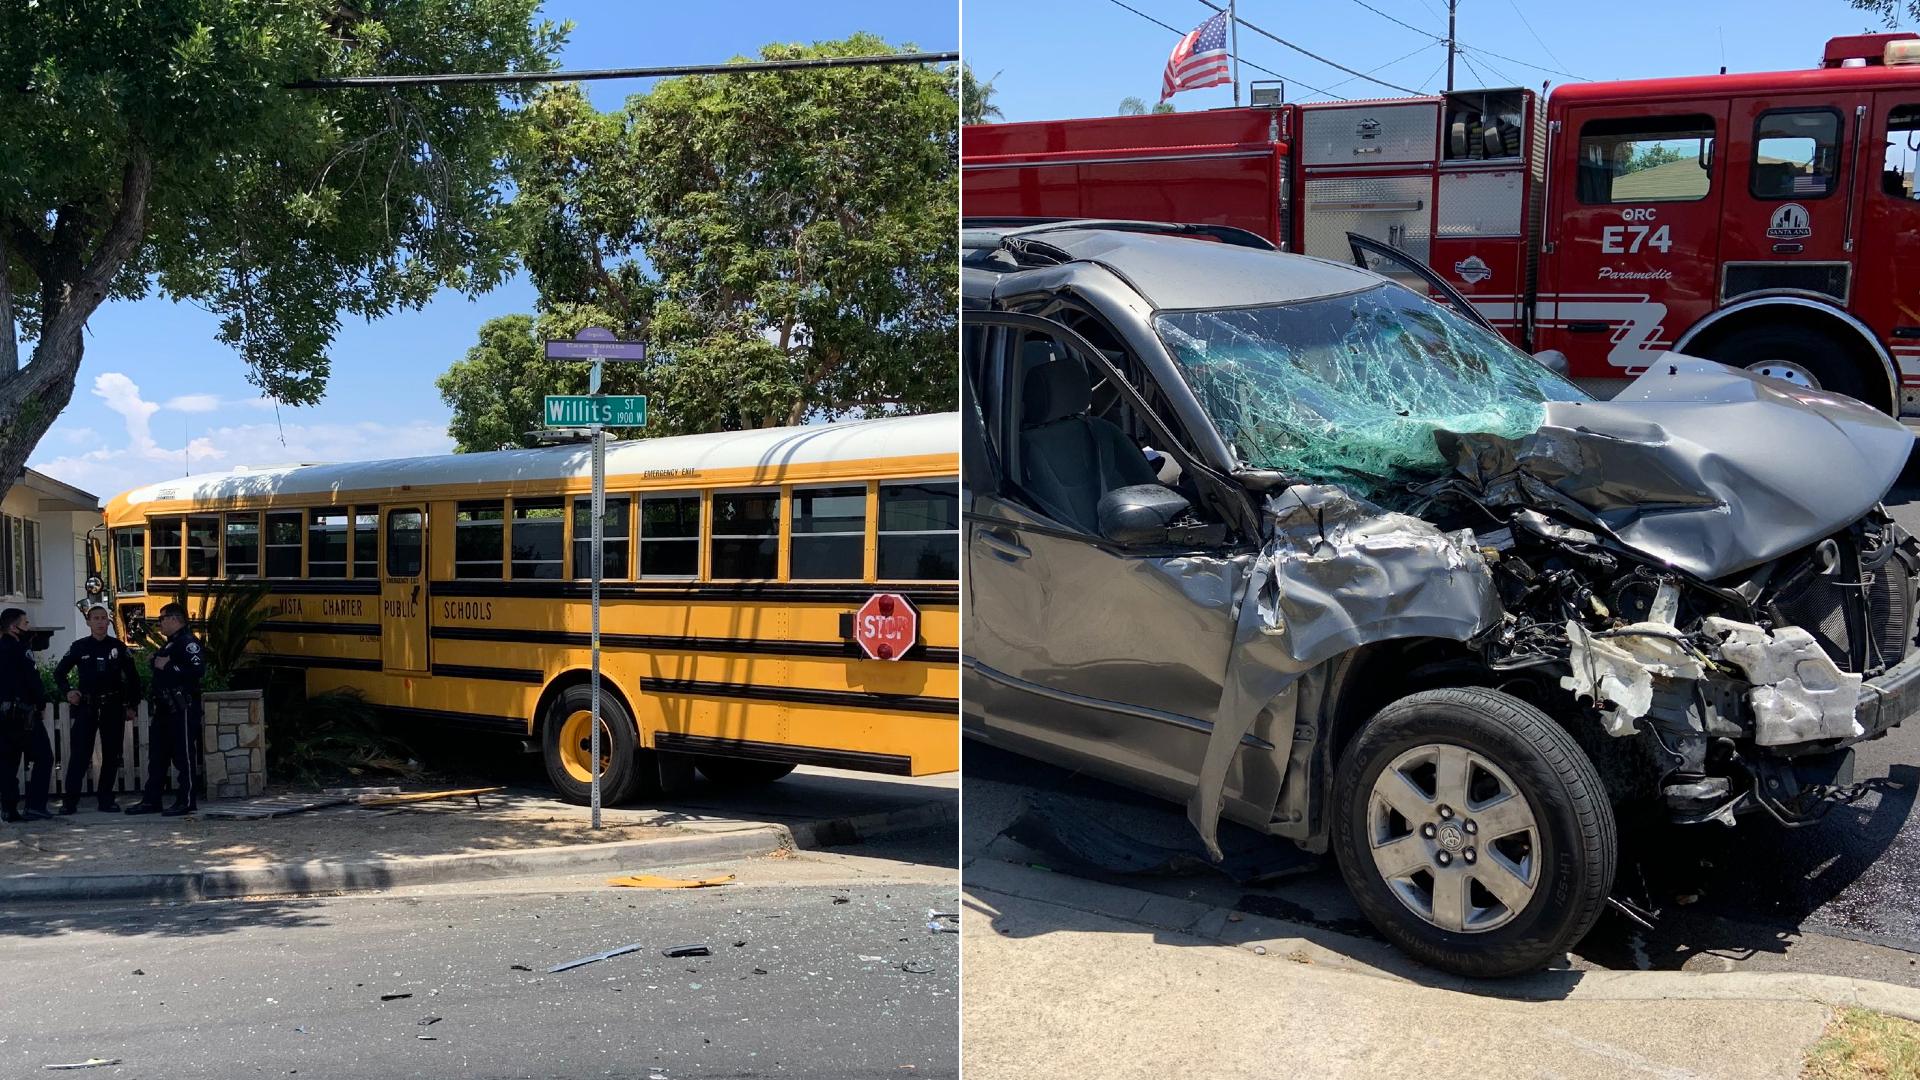 A minivan and school bus are seen following a collision in Santa Ana on June 28, 2021, in photos released by the Santa Ana Police Department.